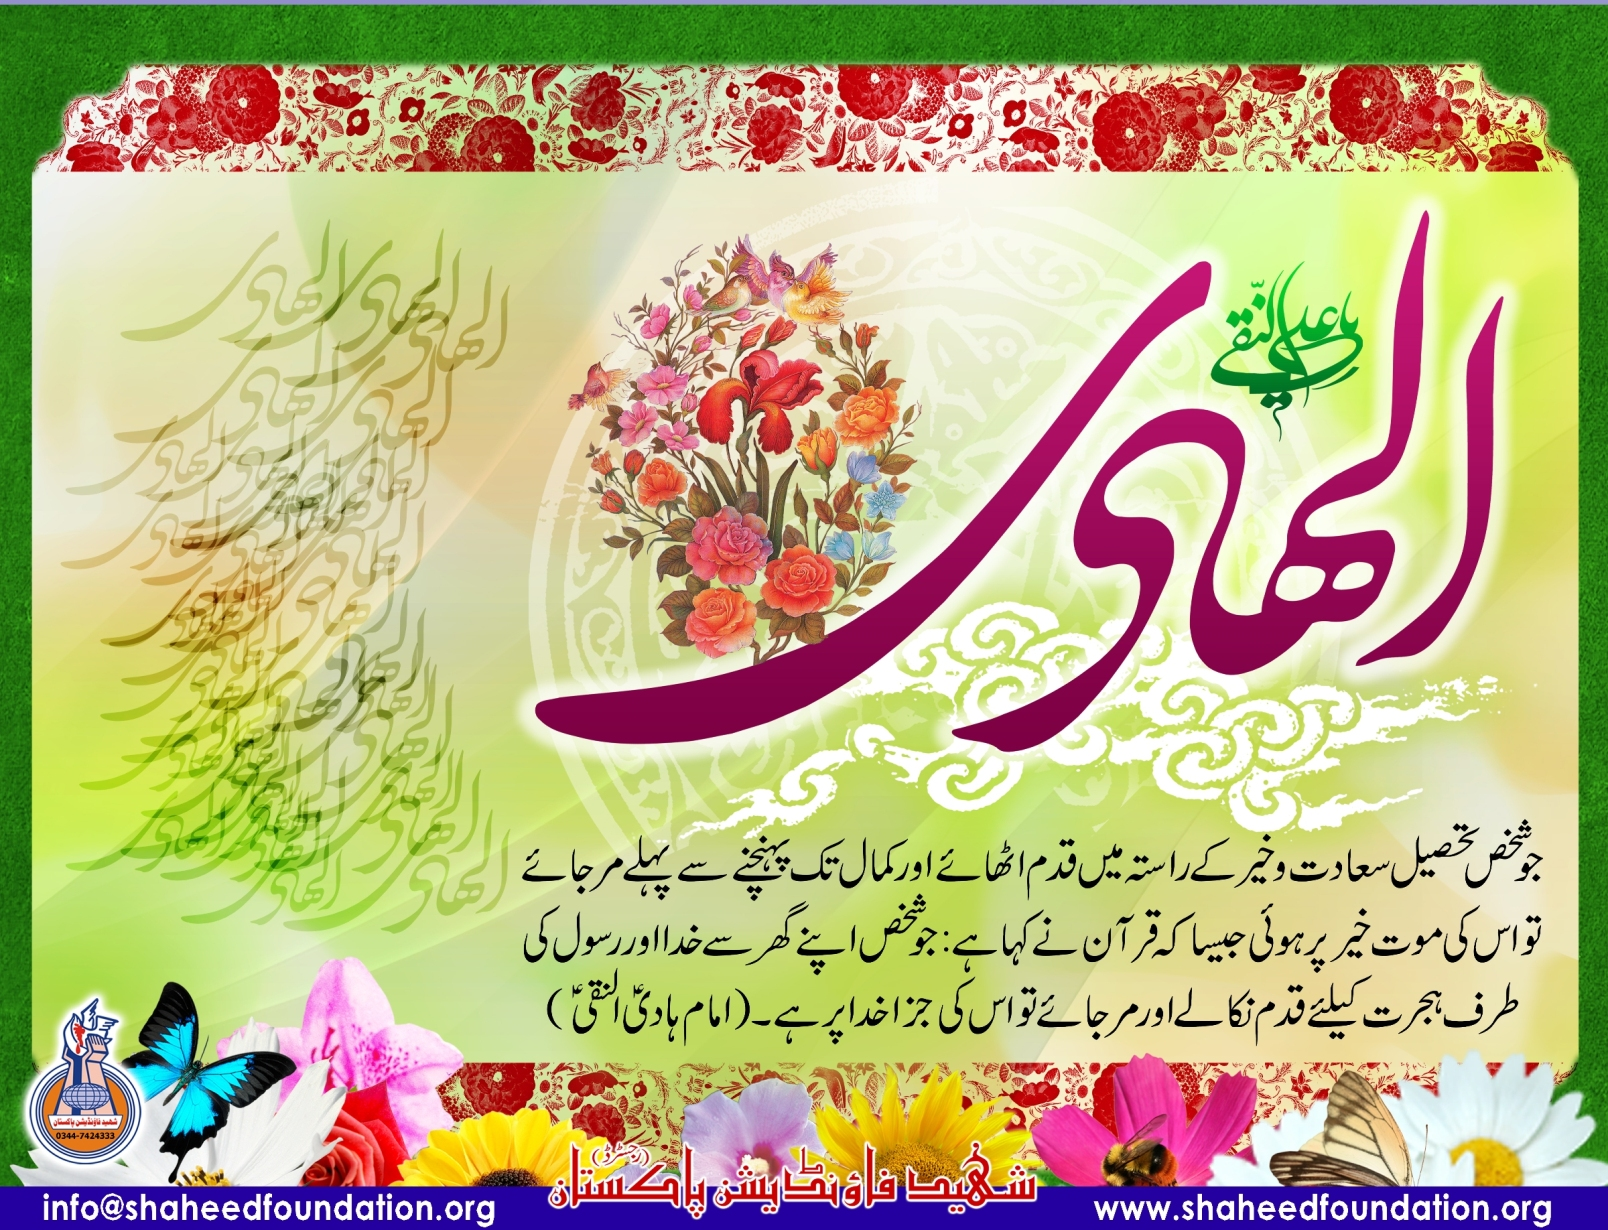 Birth Anniversary of our Imam Naqi (as)